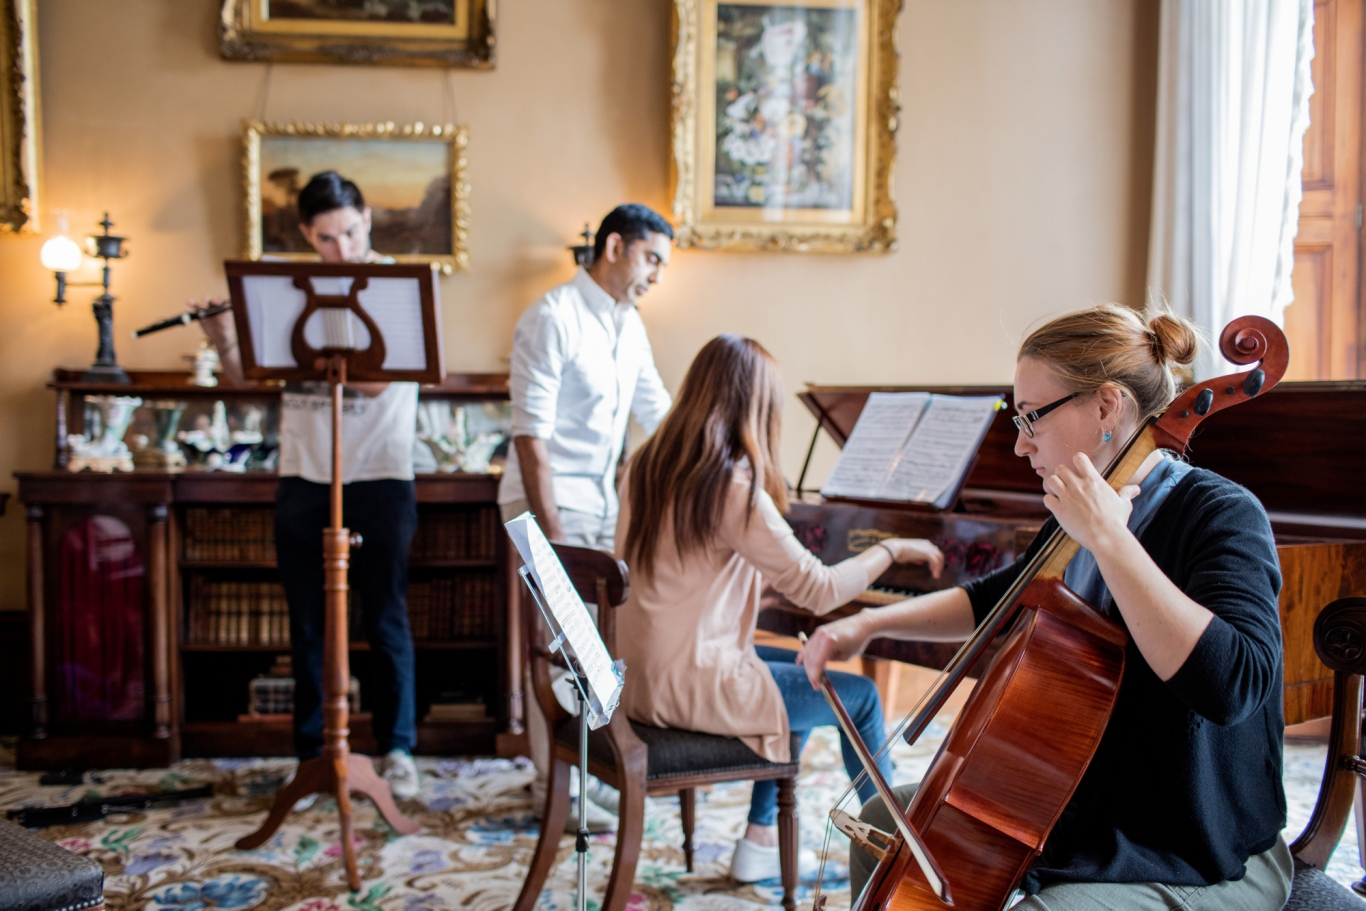 Theo Small (flute), Associate Professor Neal Peres Da Costa, Esther Kim (piano) and Jemma Thrussell (cello) from the Historical Performance Unit, Sydney Conservatorium of Music, in the drawing room at Elizabeth Bay House